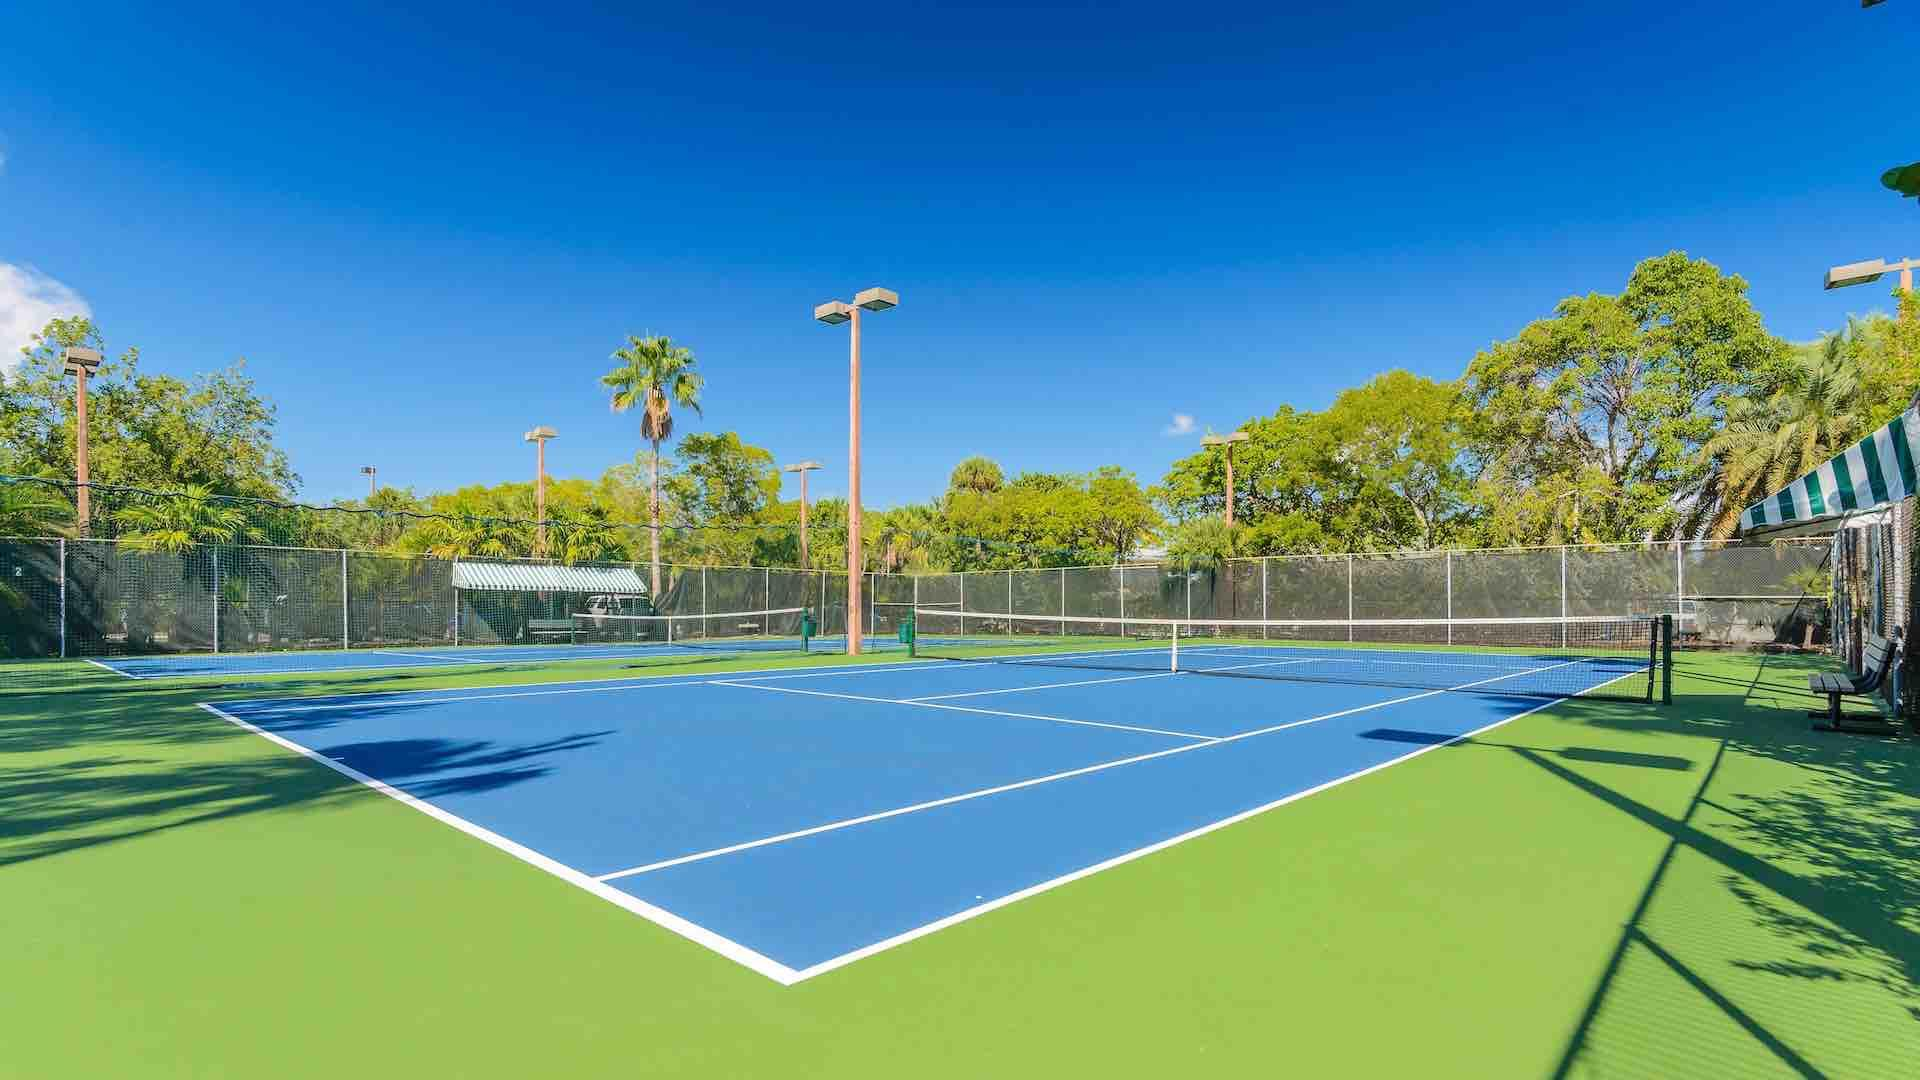 You can book time on Key West's nicest tennis courts, located right on property at 1800 Atlantic...